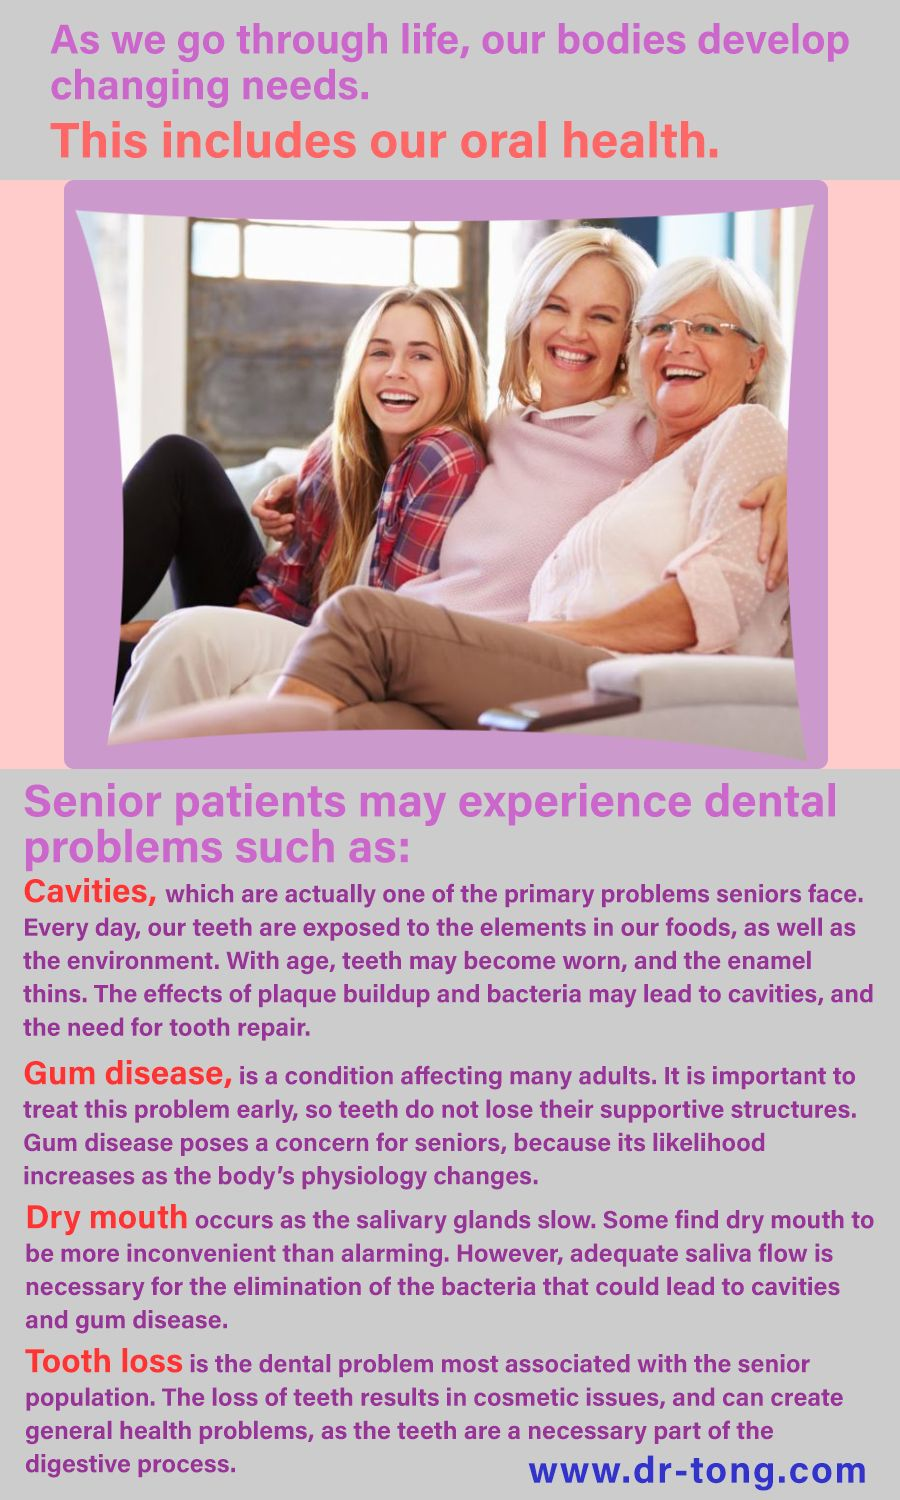 Dentists believe with a team effort patients can enjoy